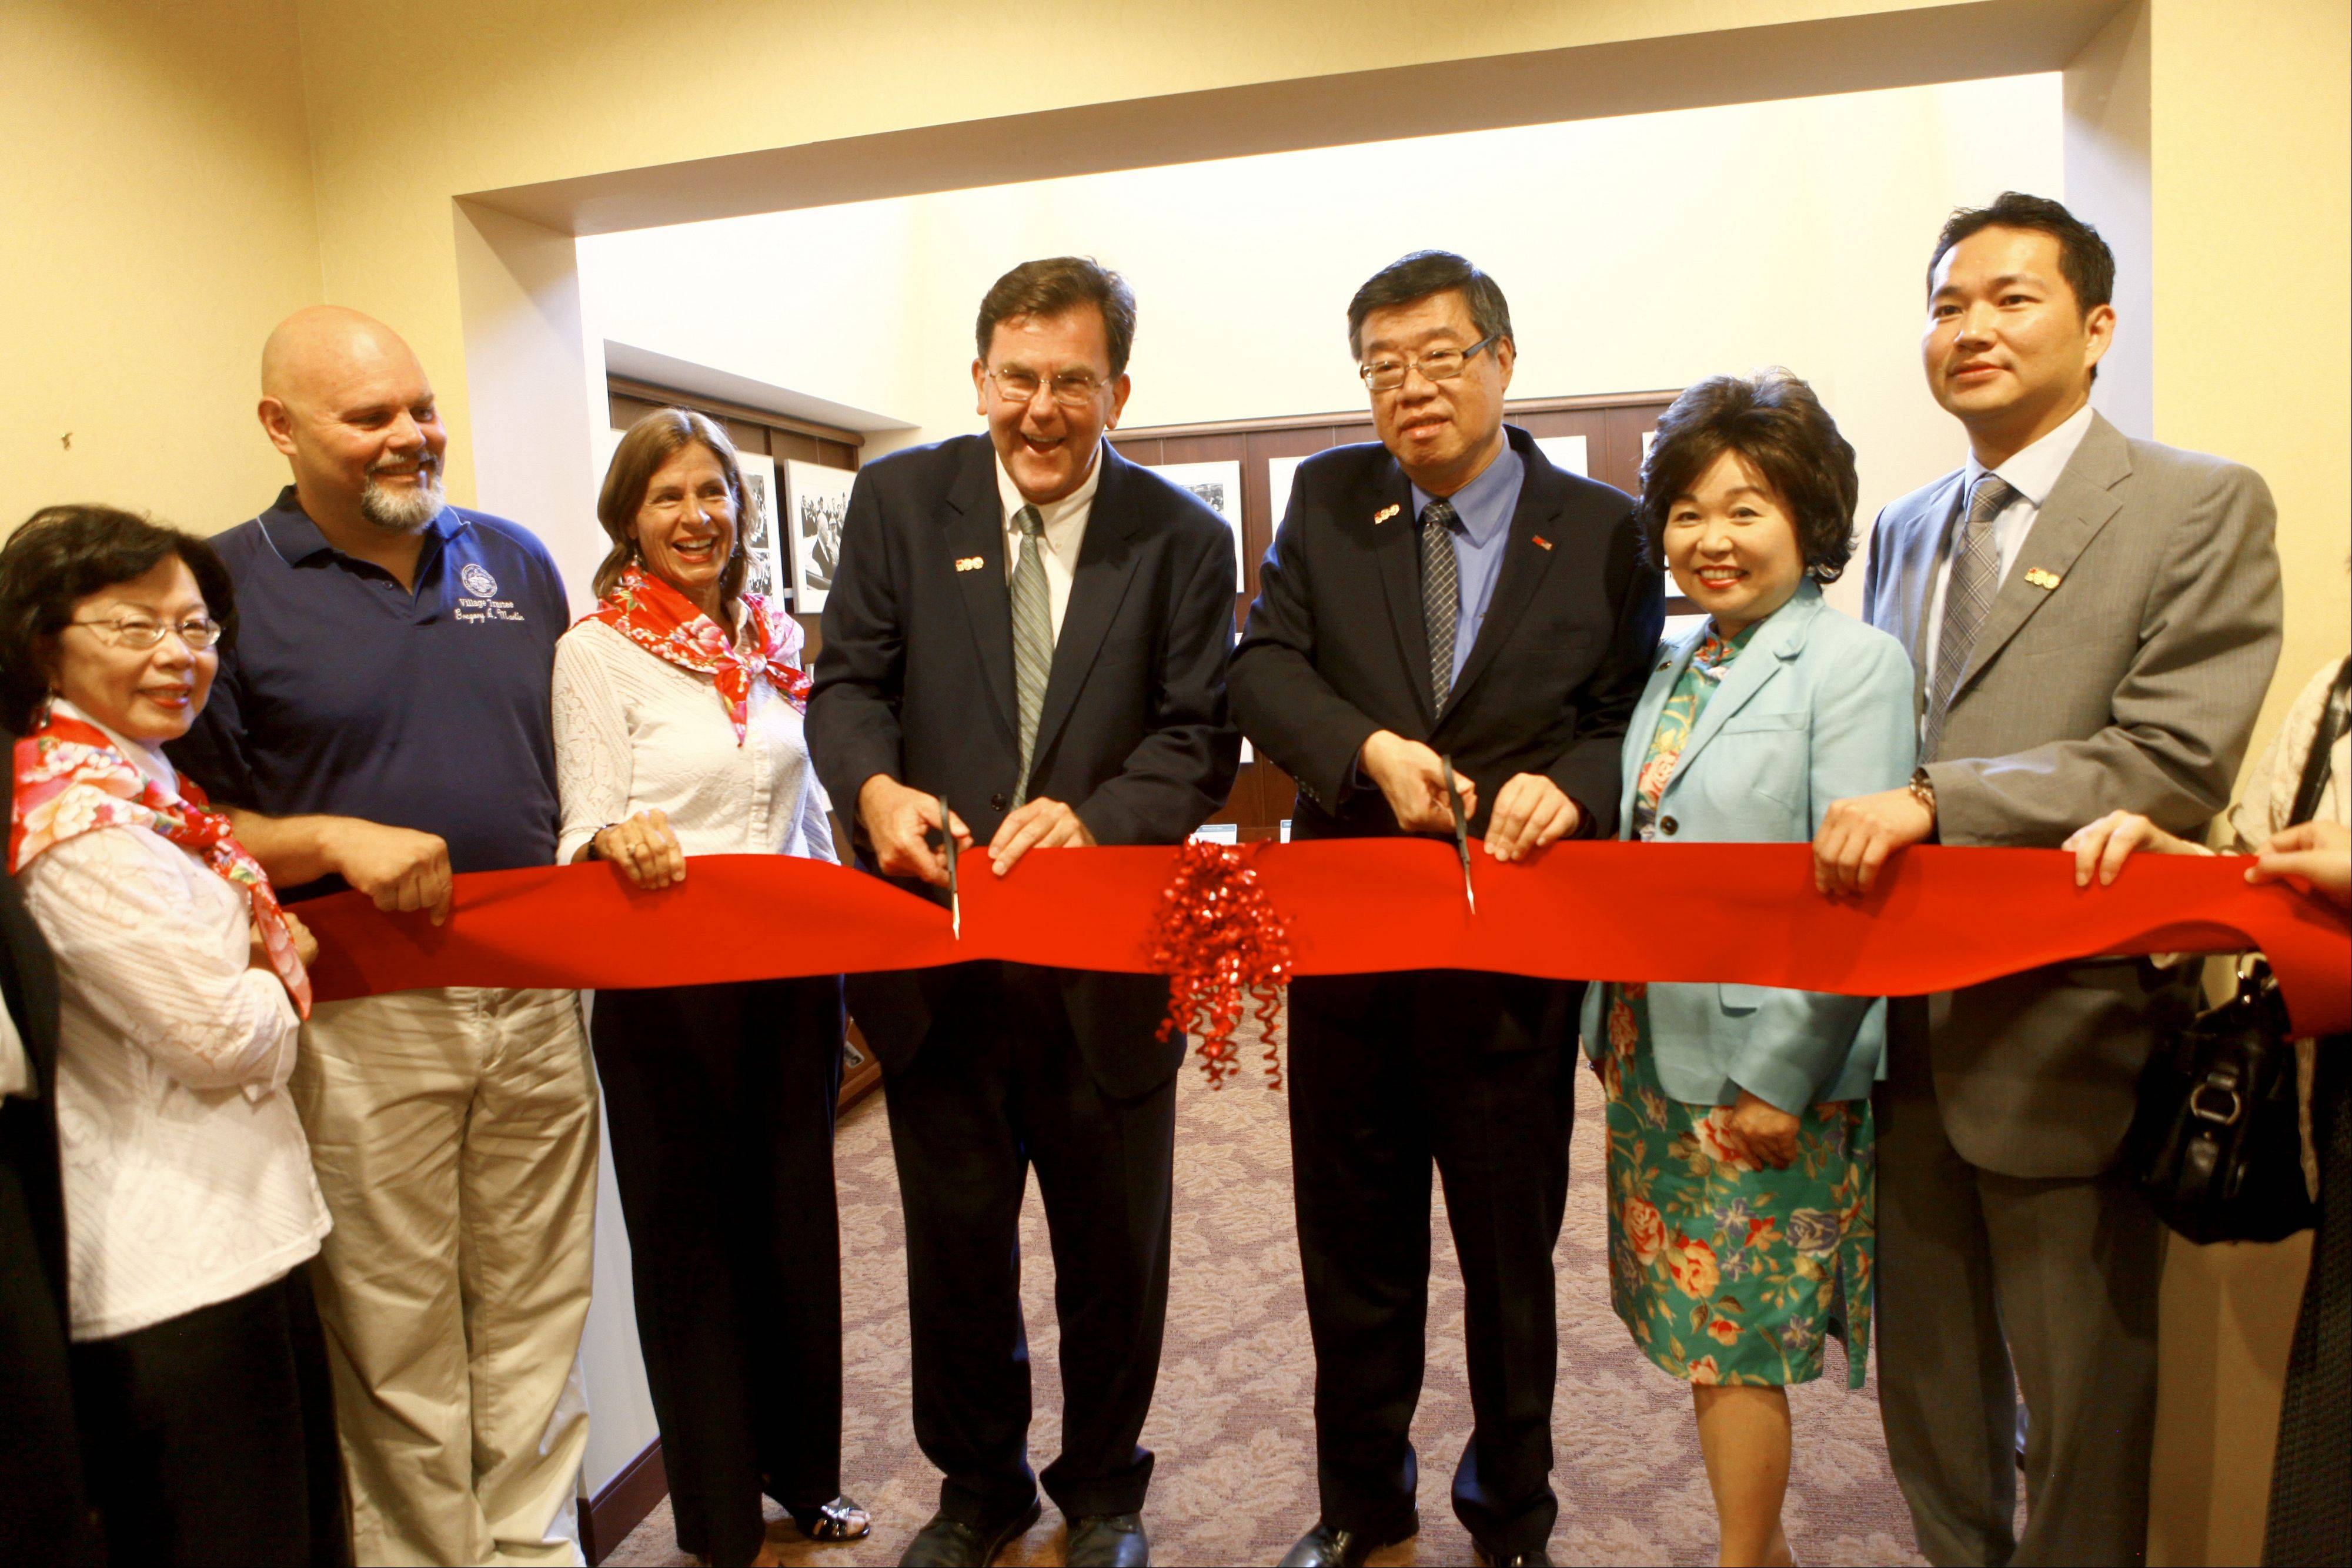 Bartlett Village President Michael E. Kelly, middle left, and Perry Shen, director general of the Taipei Economic Cultural Office in Chicago, cut the ribbon to open the photo exhibit Thursday at the village hall. The exhibit is on display until July 26.